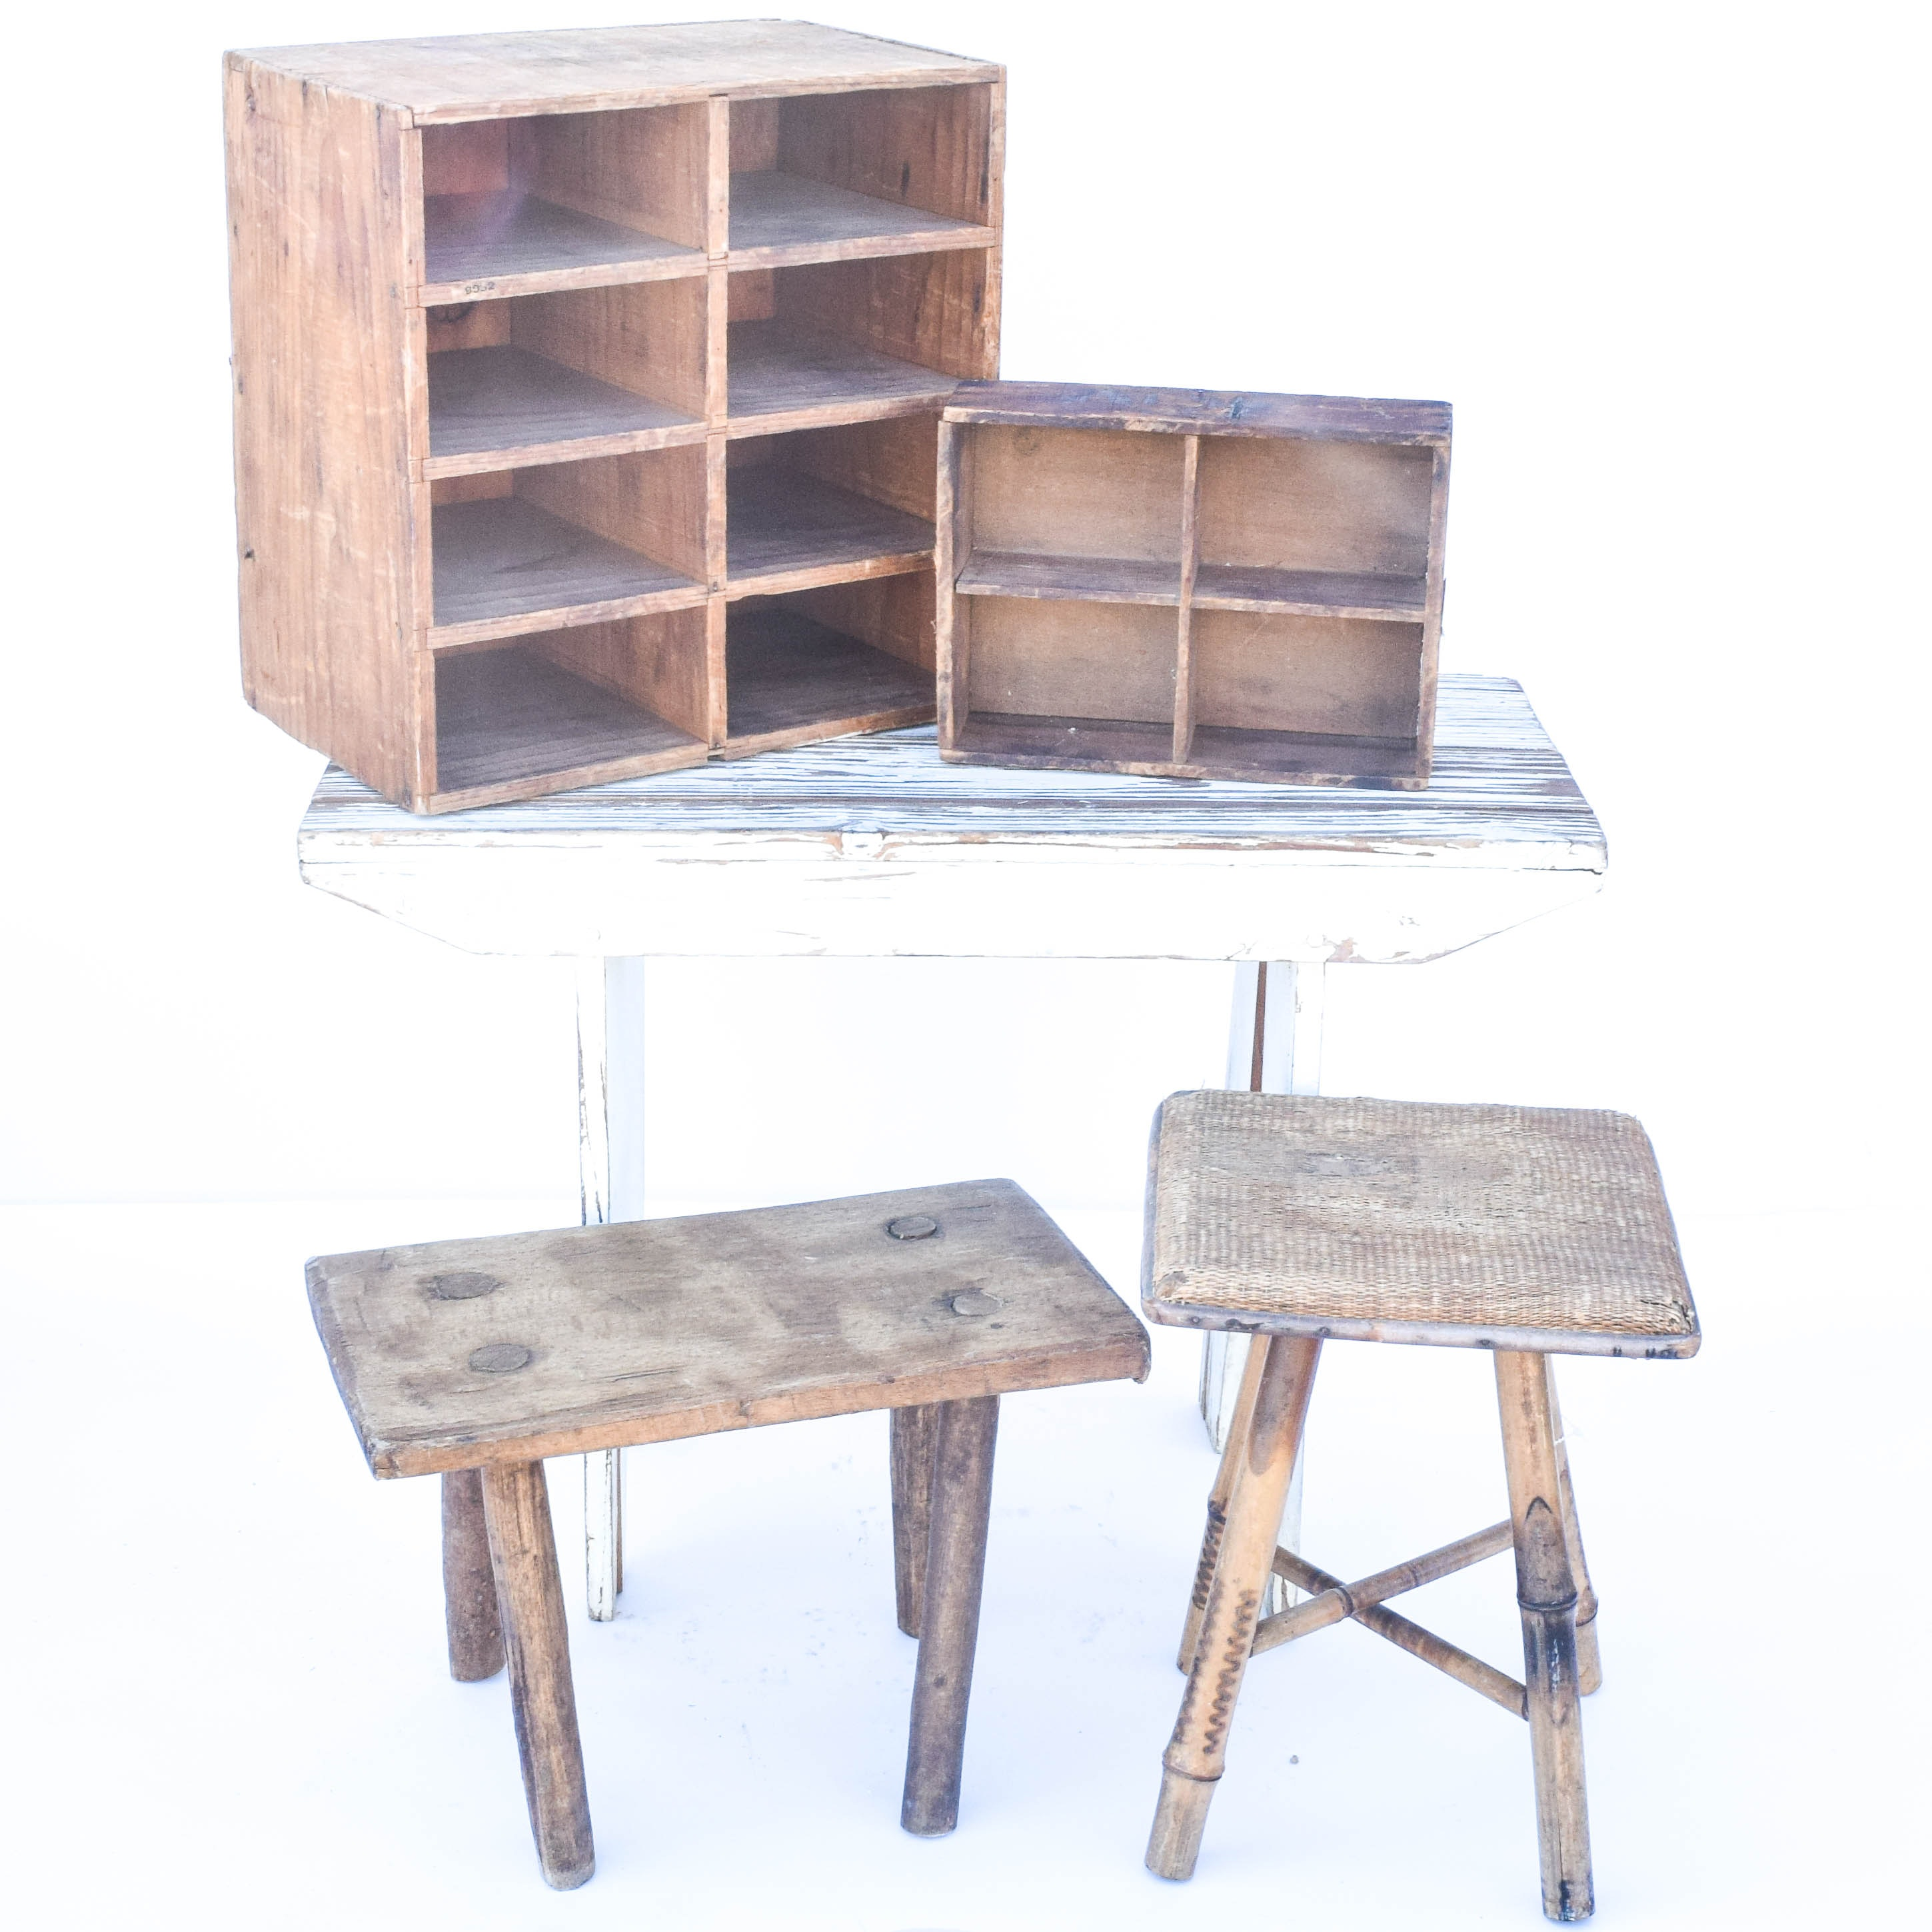 Distressed Style Wooden Display Shelves and Stands